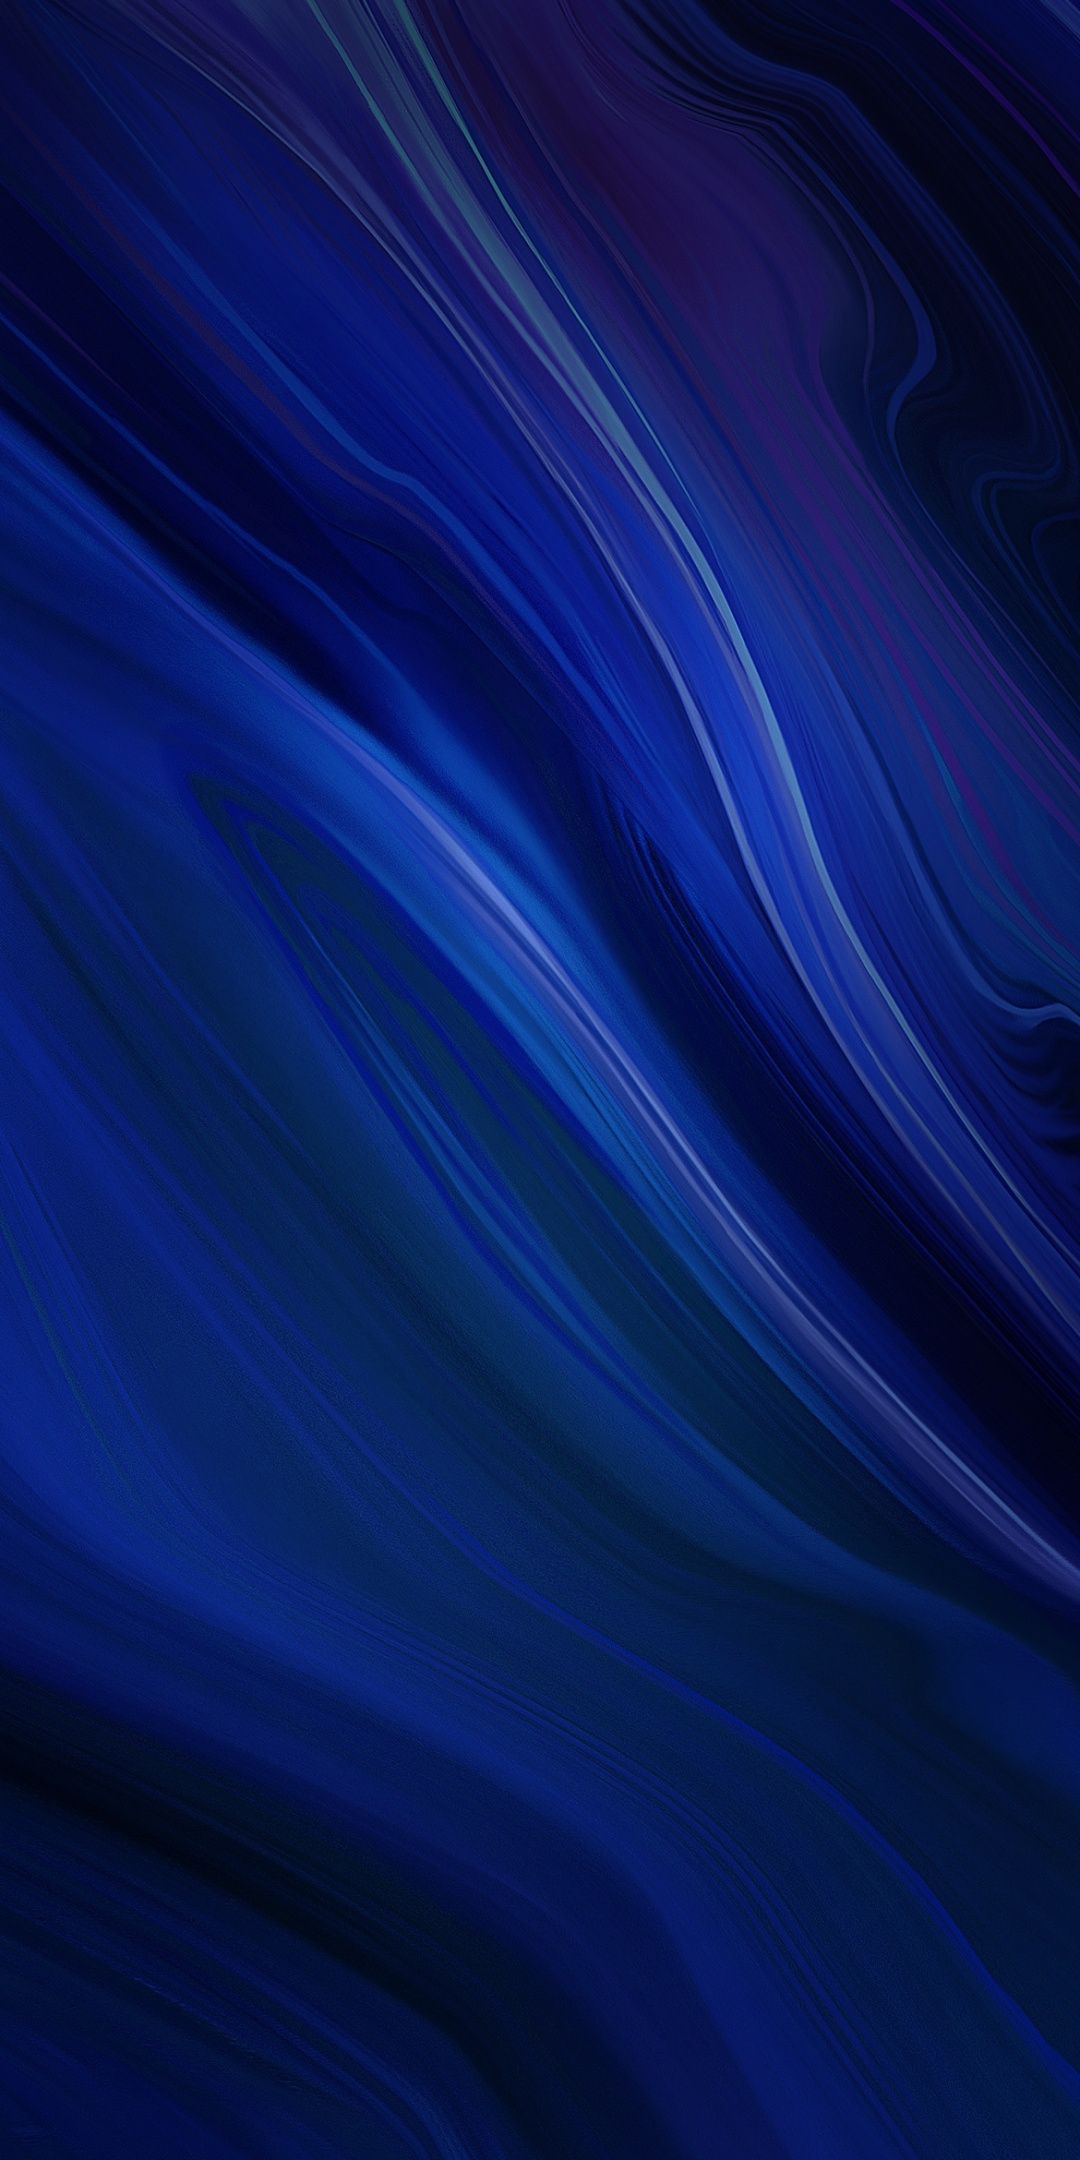 Bluedark, pattern, Huawei P30 Wallpaper in 2019 Huawei